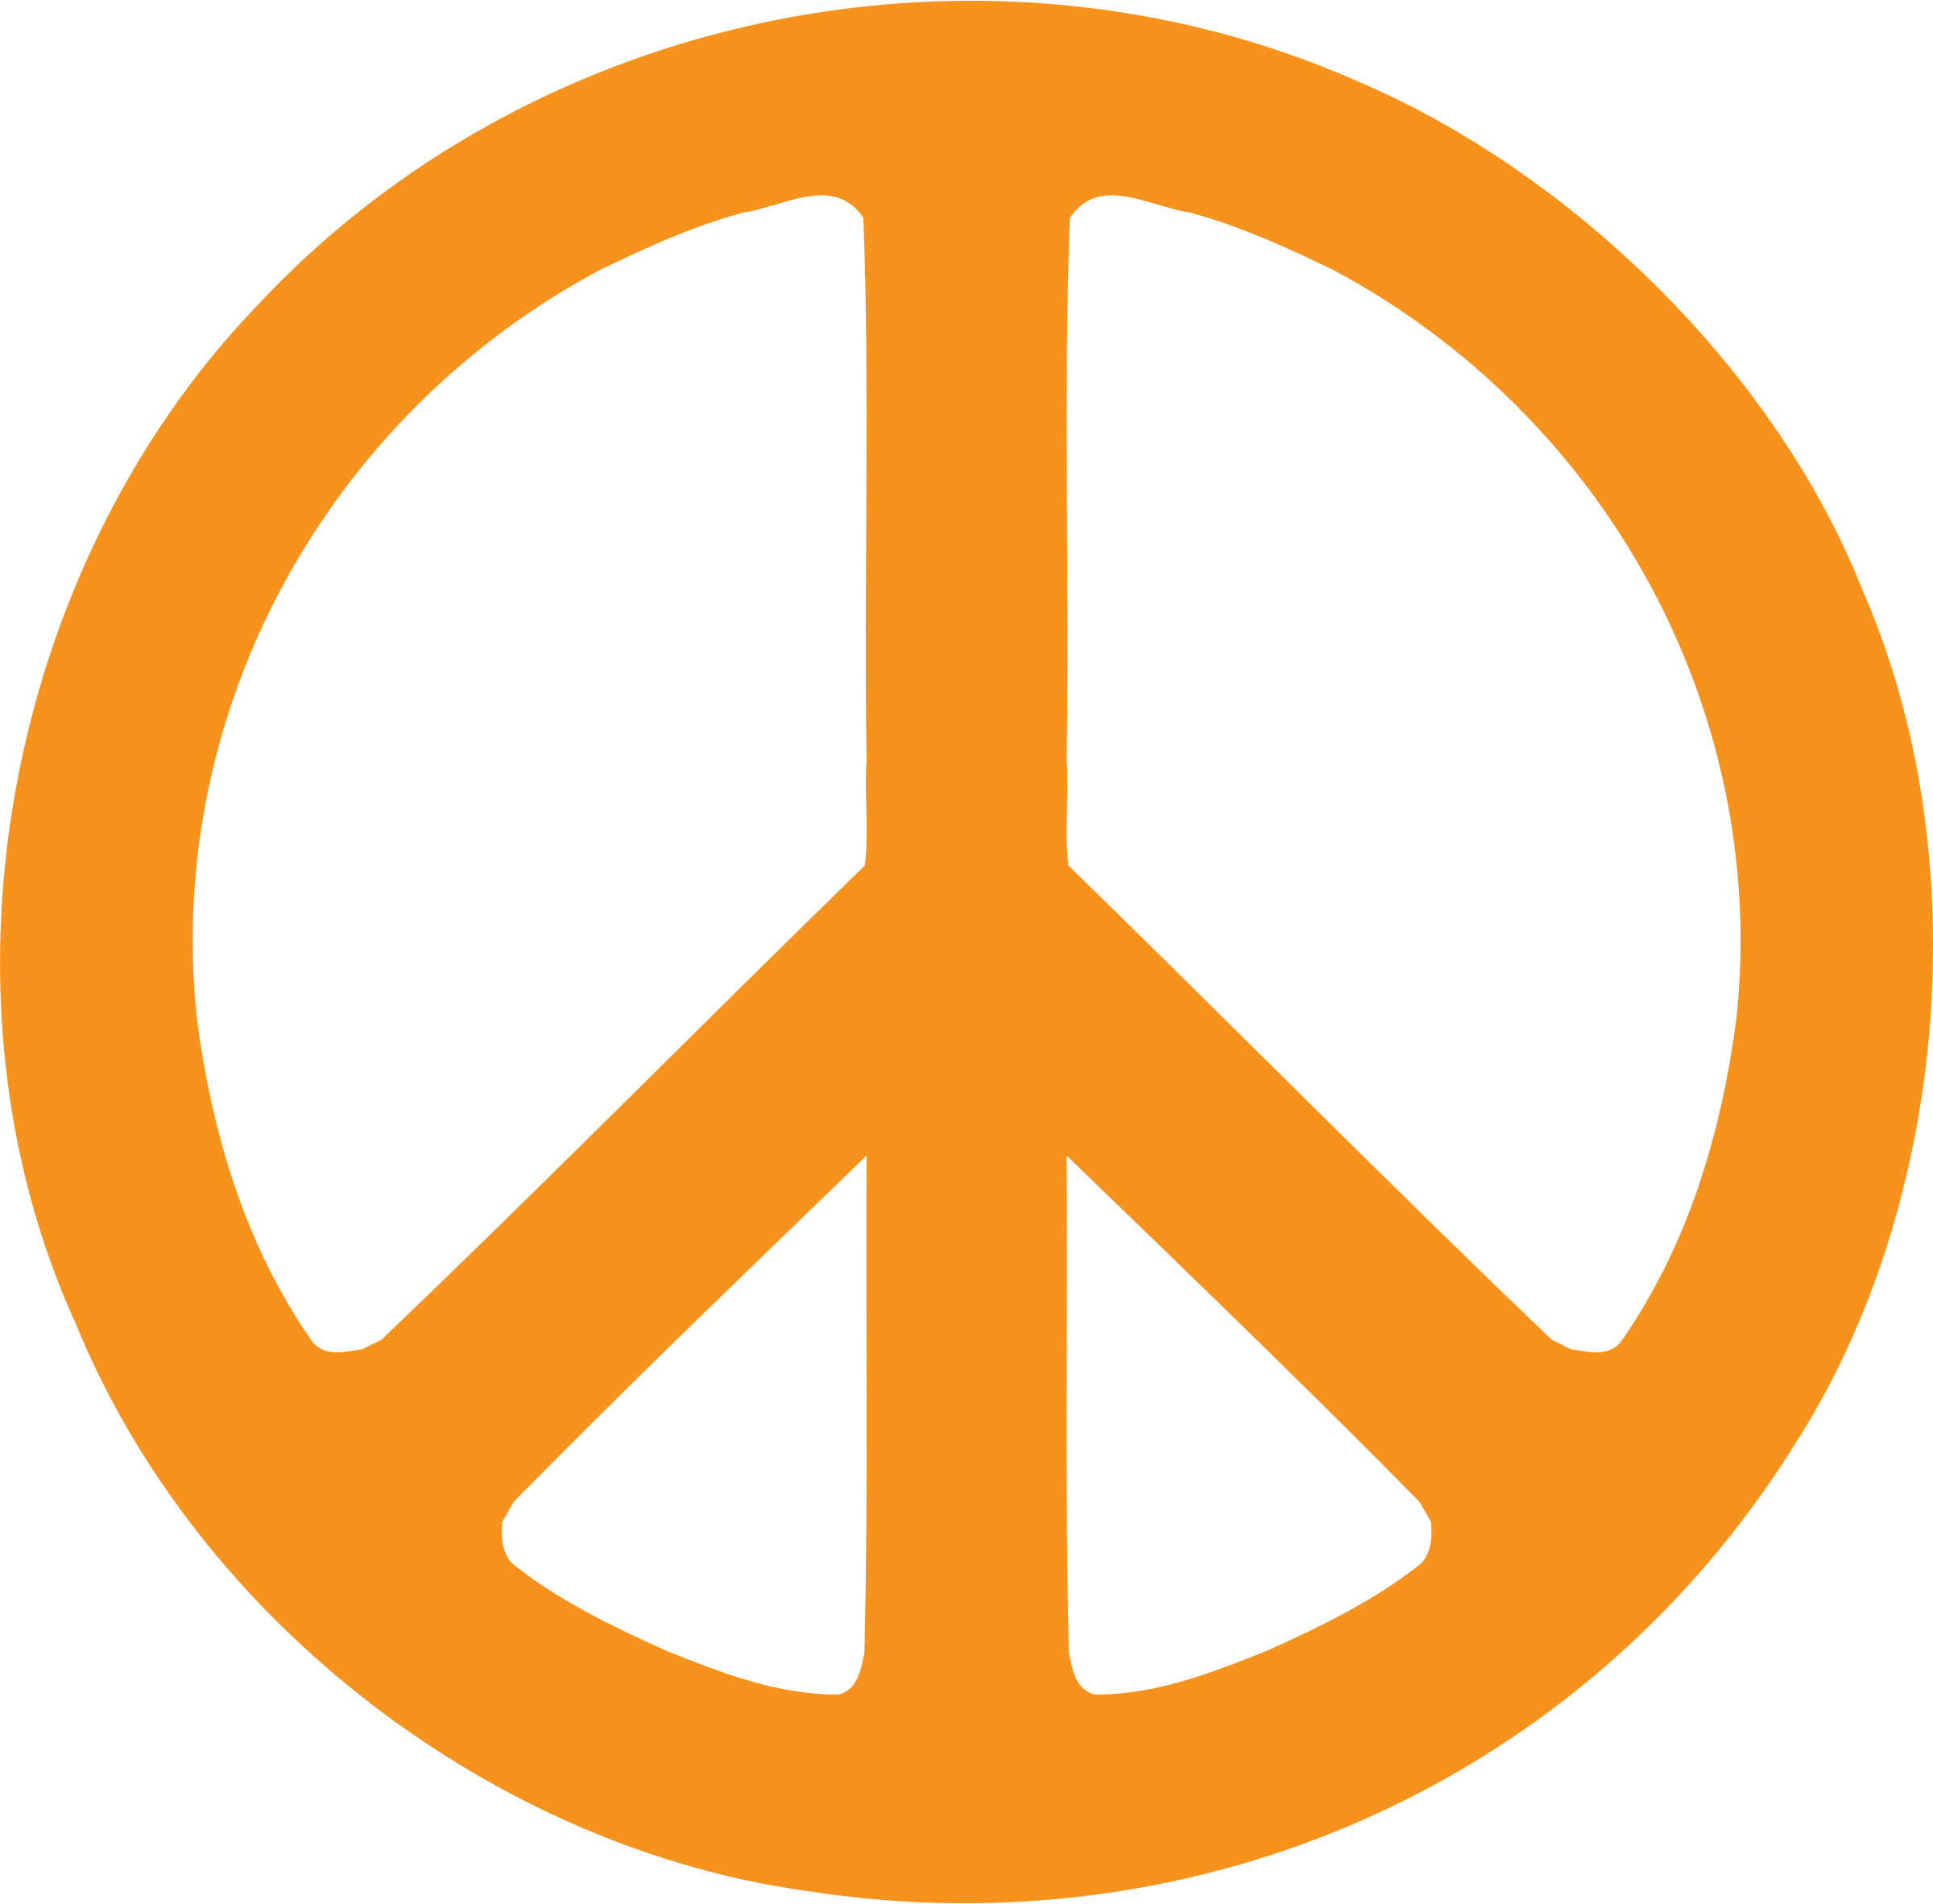 e33a6e1ee Peace Sign Image | Free download best Peace Sign Image on ClipArtMag.com